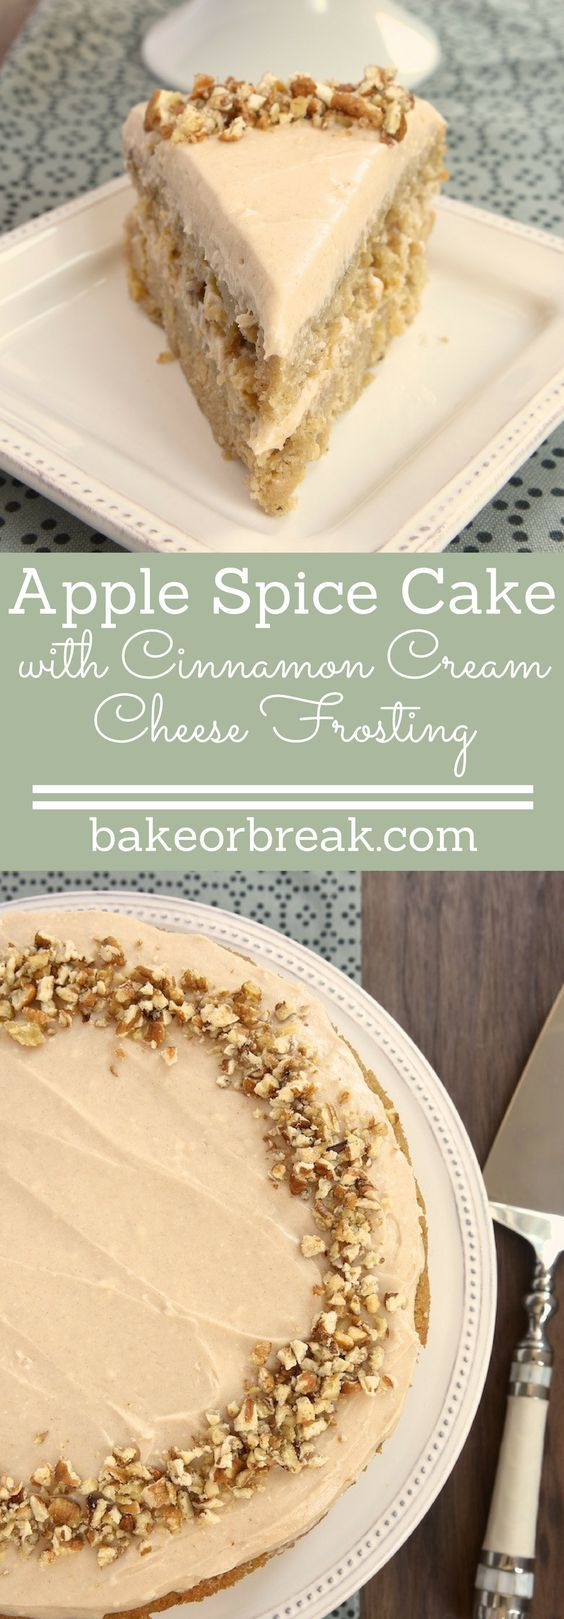 Apple Spice Cake with Cinnamon Cream Cheese Frosting is a delicious celebration…